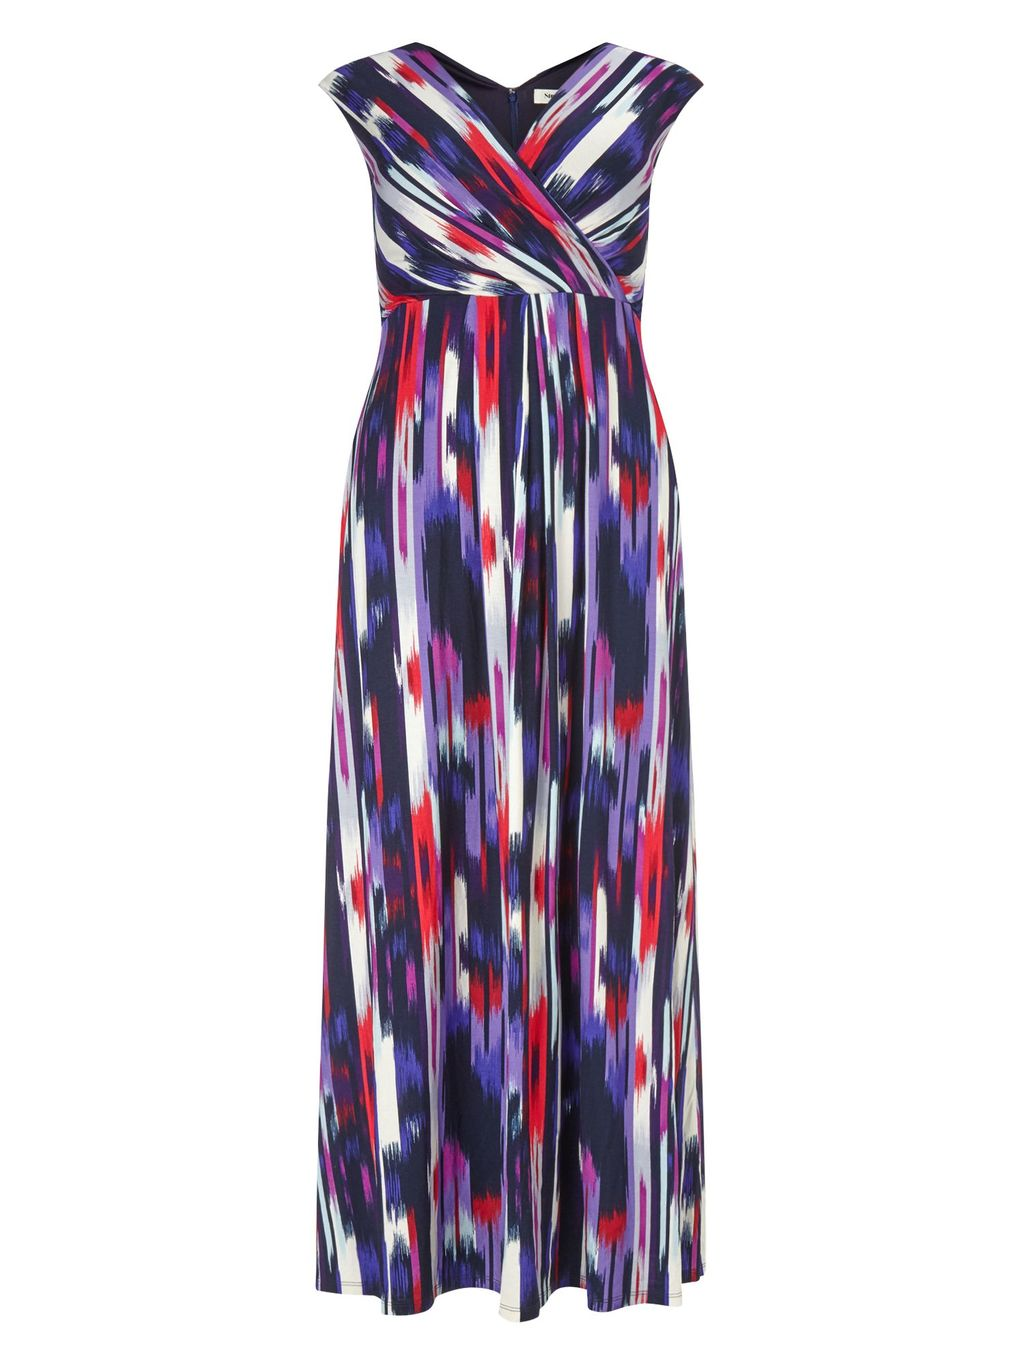 Jolene Maxi Dress, Multi Coloured - neckline: v-neck; sleeve style: sleeveless; style: maxi dress; pattern: striped; secondary colour: white; predominant colour: purple; occasions: evening; length: floor length; fit: body skimming; fibres: viscose/rayon - stretch; sleeve length: sleeveless; pattern type: fabric; texture group: jersey - stretchy/drapey; multicoloured: multicoloured; season: s/s 2016; wardrobe: event